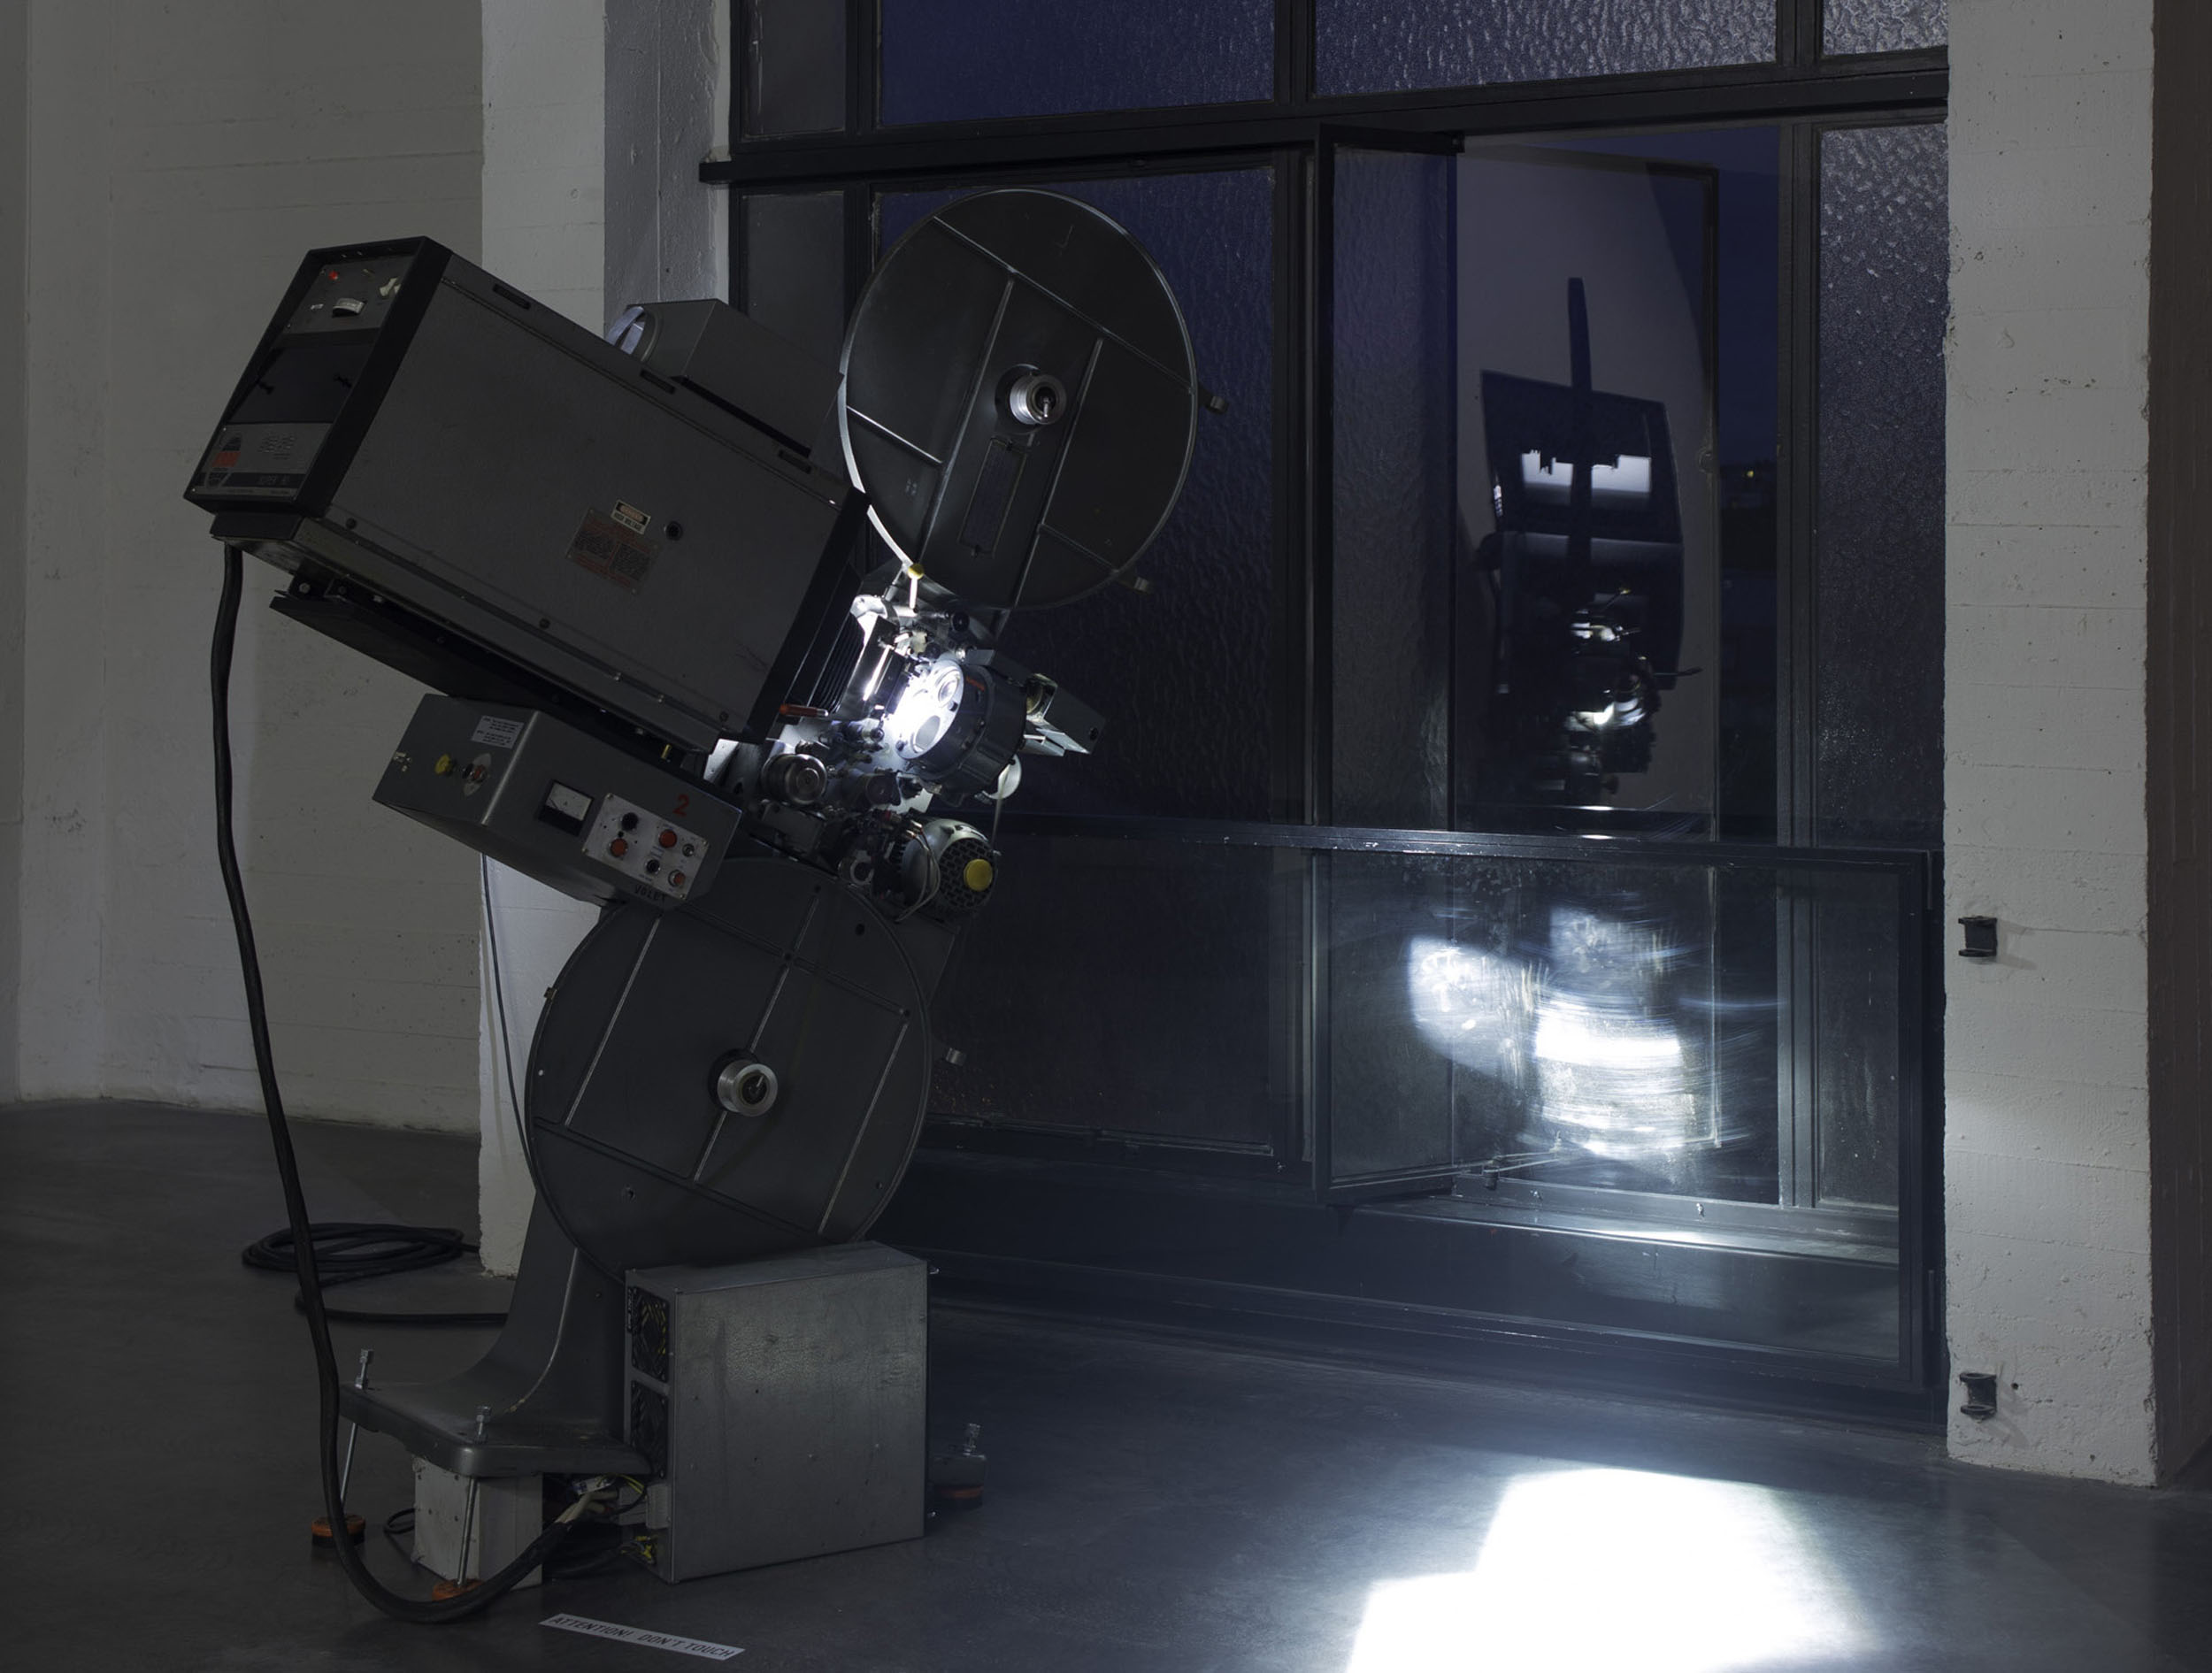 40 Installation view of Film as Sculpture (07.06-18.08.2013) with Rosa Barba, %22White Museum%22, 2013 at WIELS, Contemporary Art Centre, Brussels. Photo Filip Vanzieleghem _3.jpg